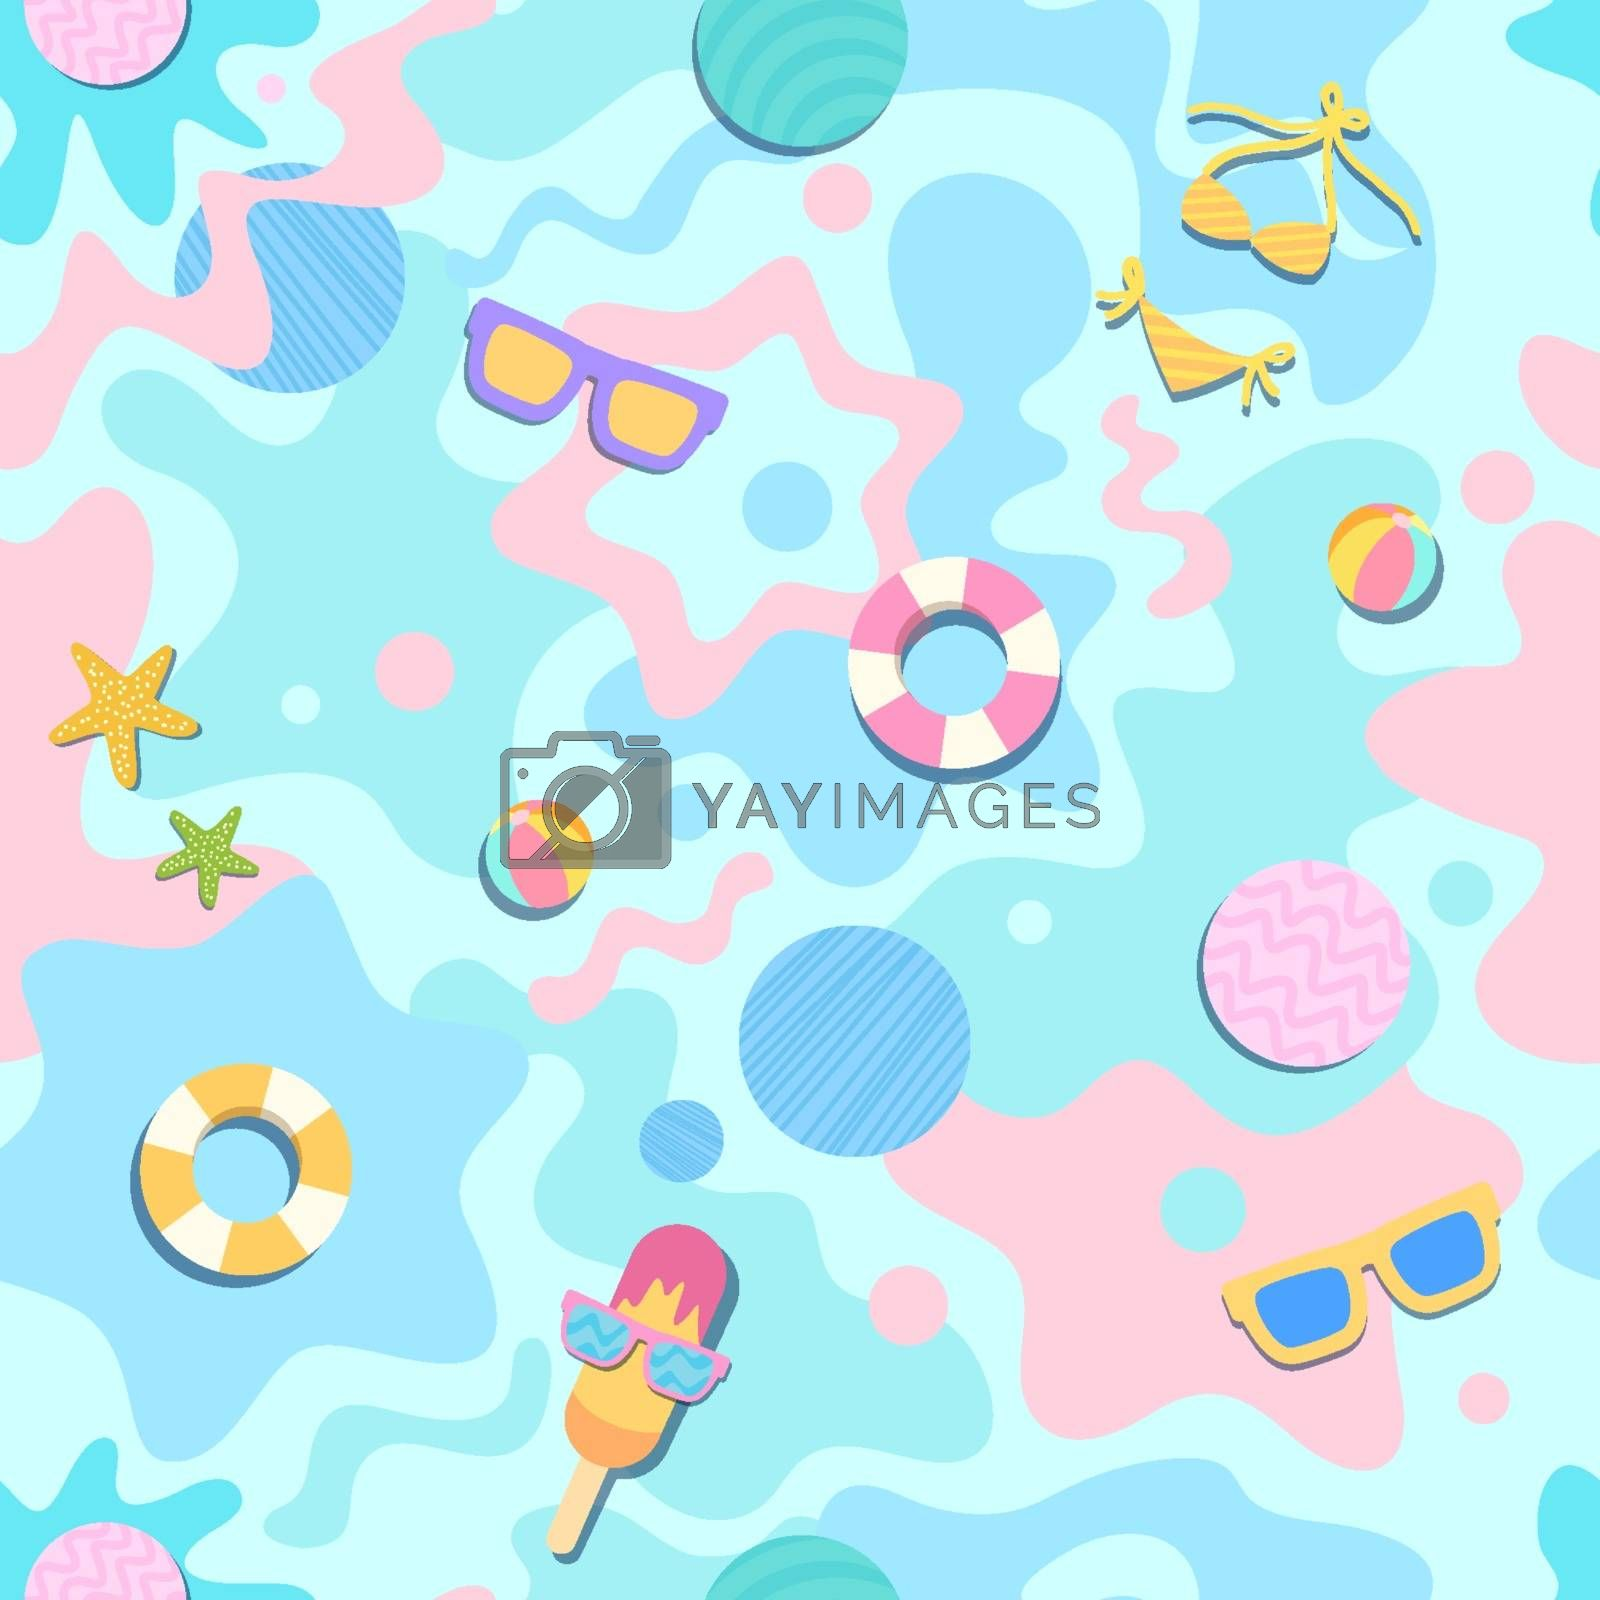 Royalty free image of summer-cut-seamless-pattern by Tharnthip